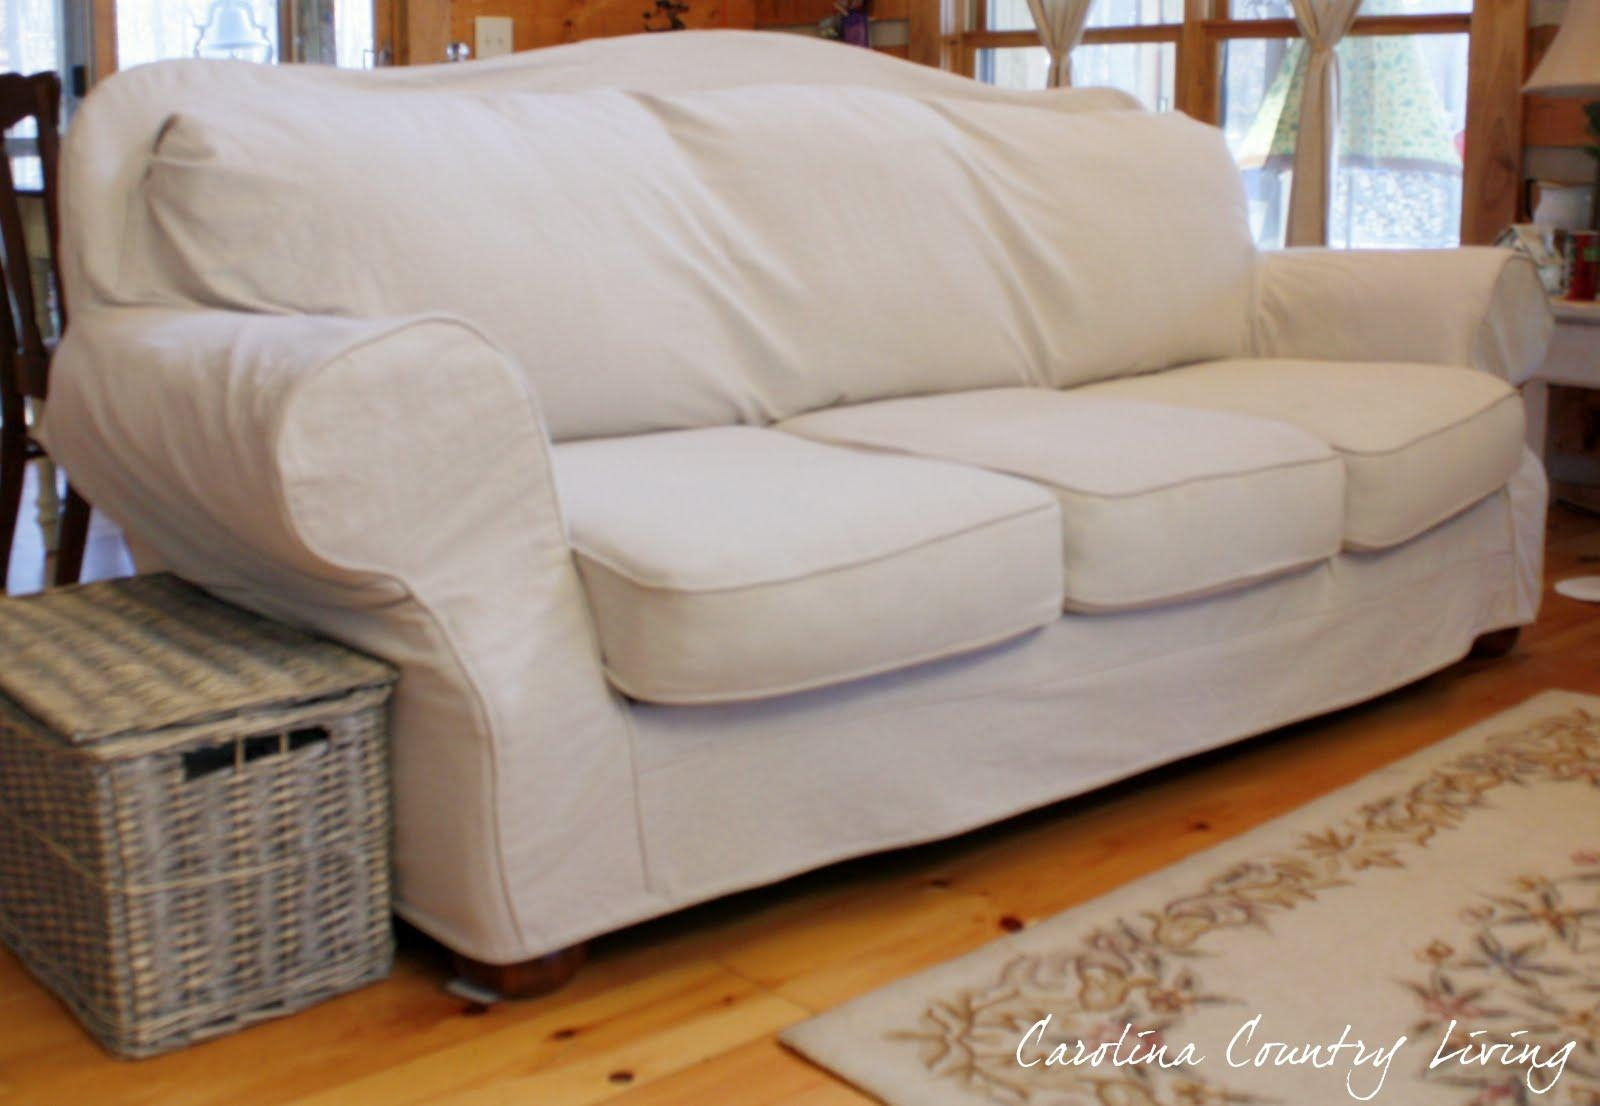 Furniture: Perfect Living Room With Sofa Slipcovers Walmart For With Regard To Slipcovers For Chaise Lounge Sofas (Image 9 of 20)